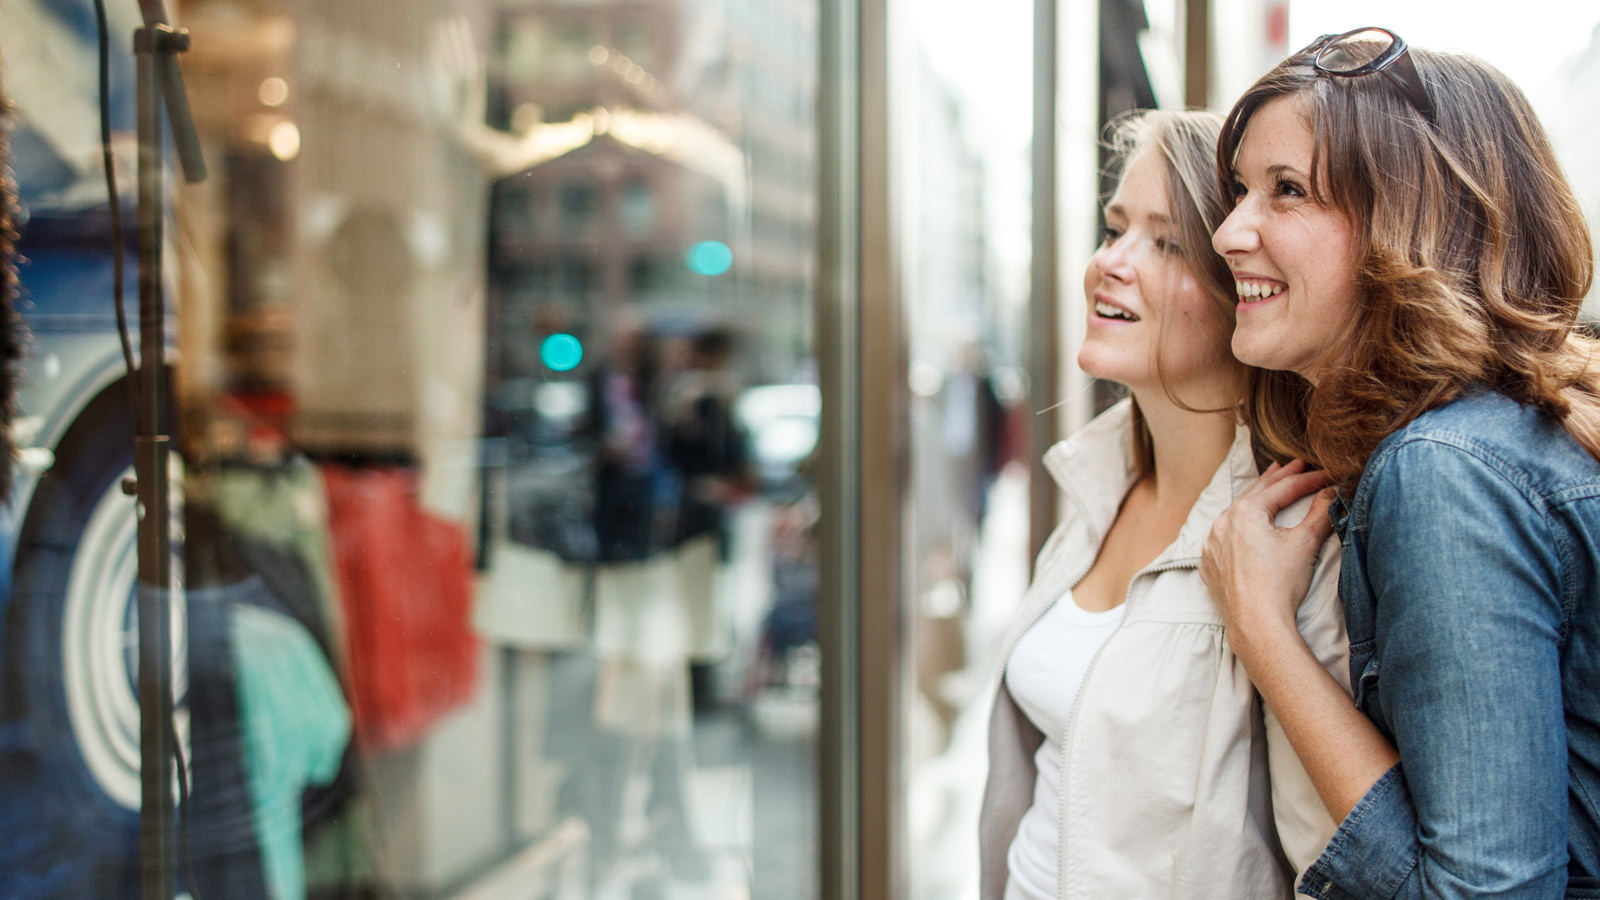 women-window-shopping-1600x900